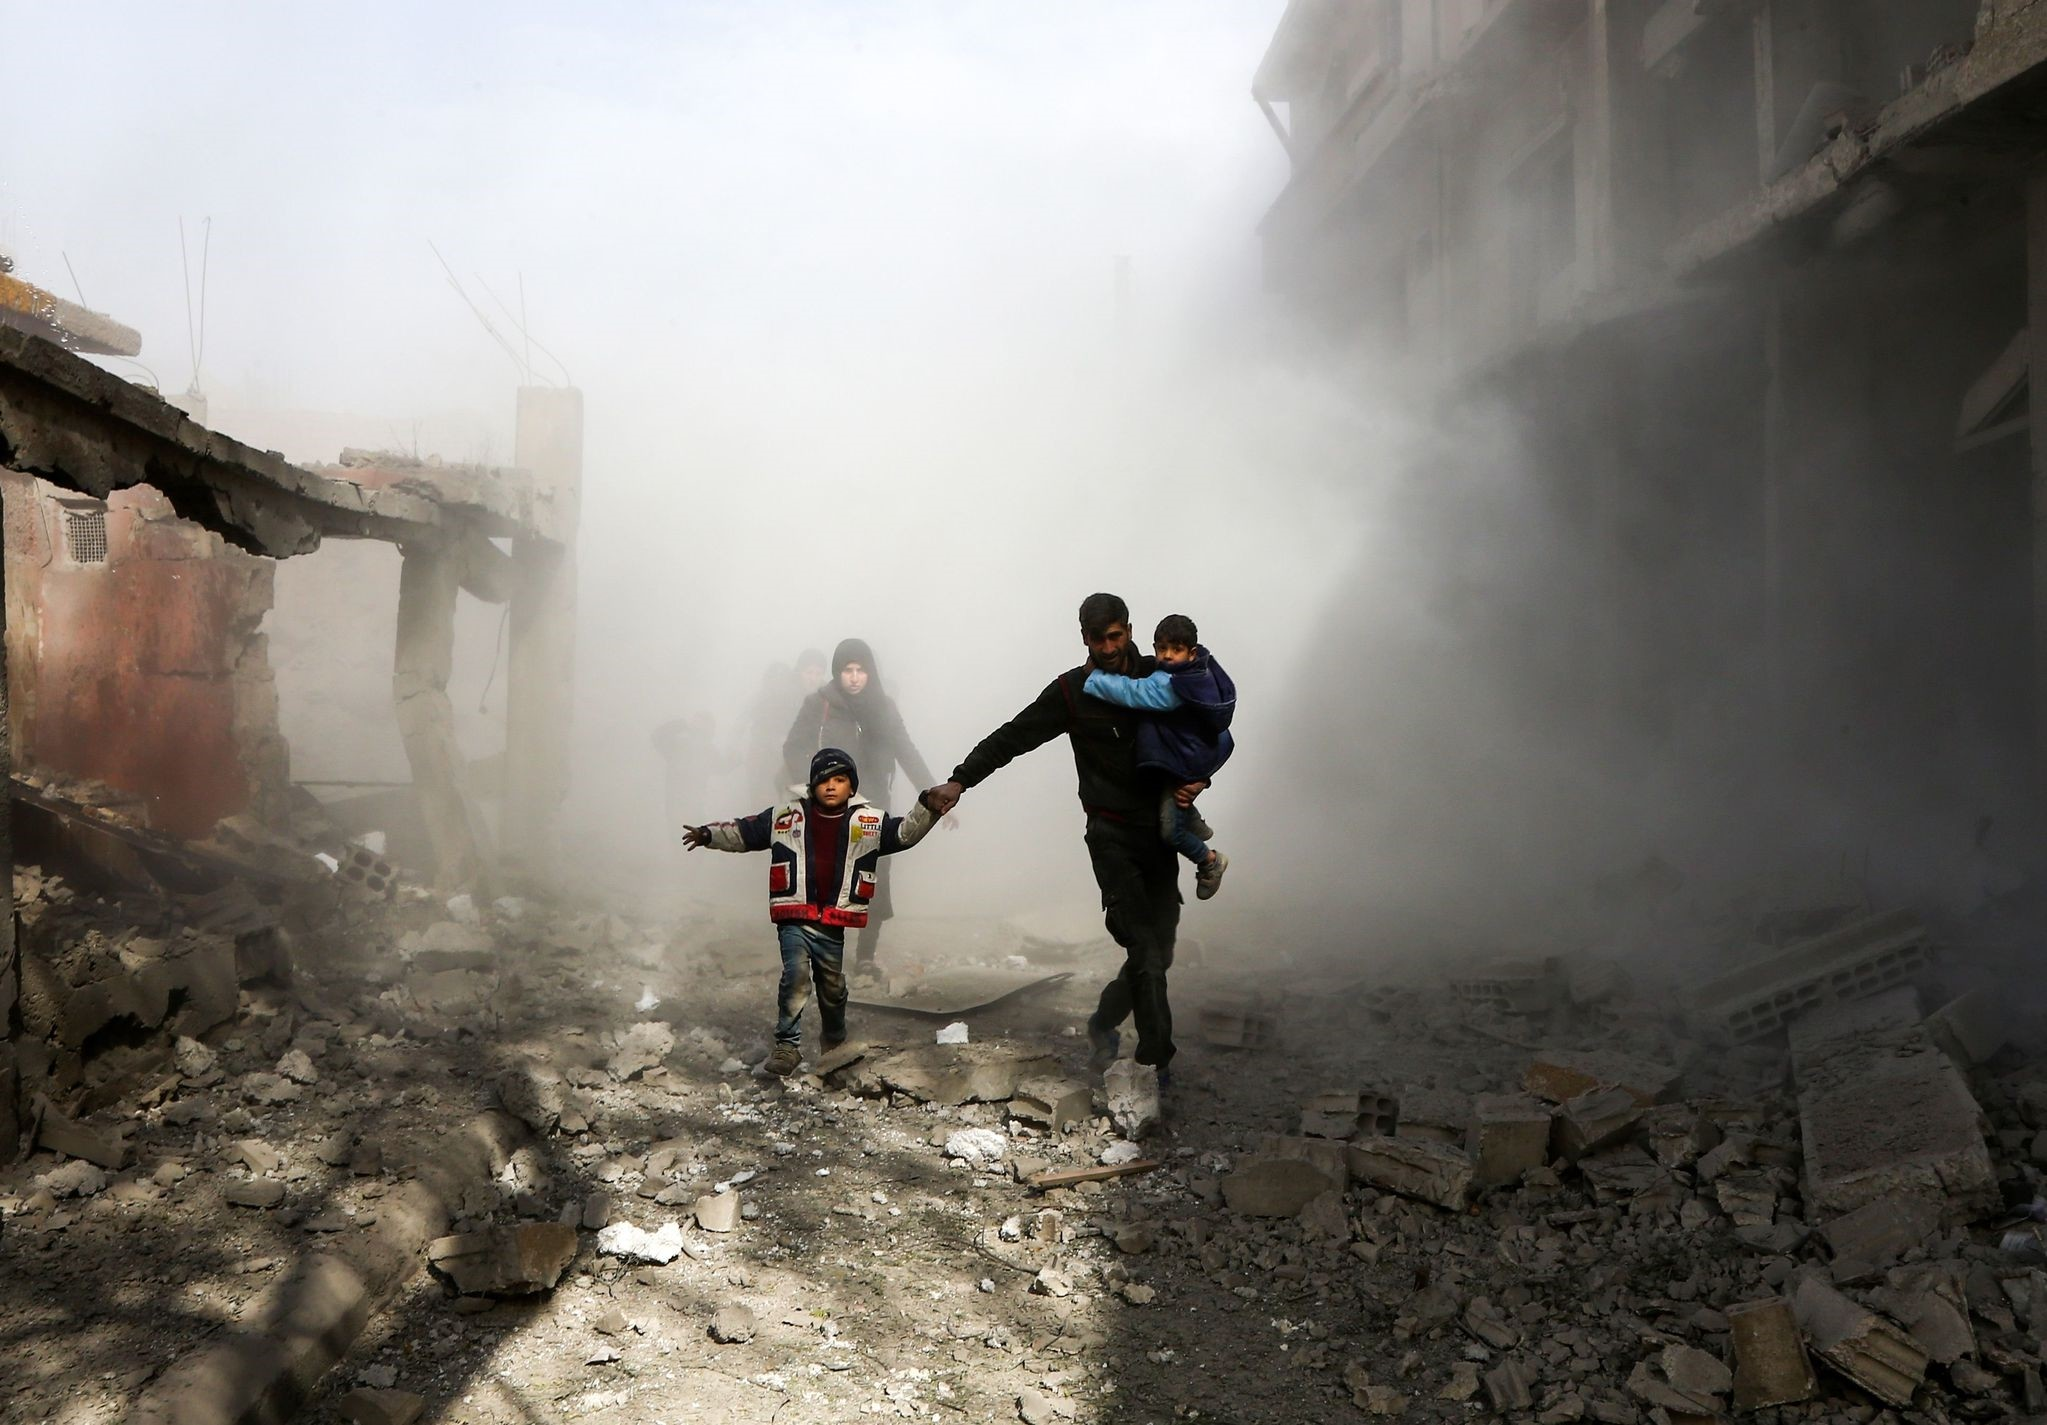 Syrian civlians flee from reported regime air strikes in the rebel-held town of Jisreen, in the besieged Eastern Ghouta region on the outskirts of the capital Damascus, on February 8, 2018. (AFP Photo)